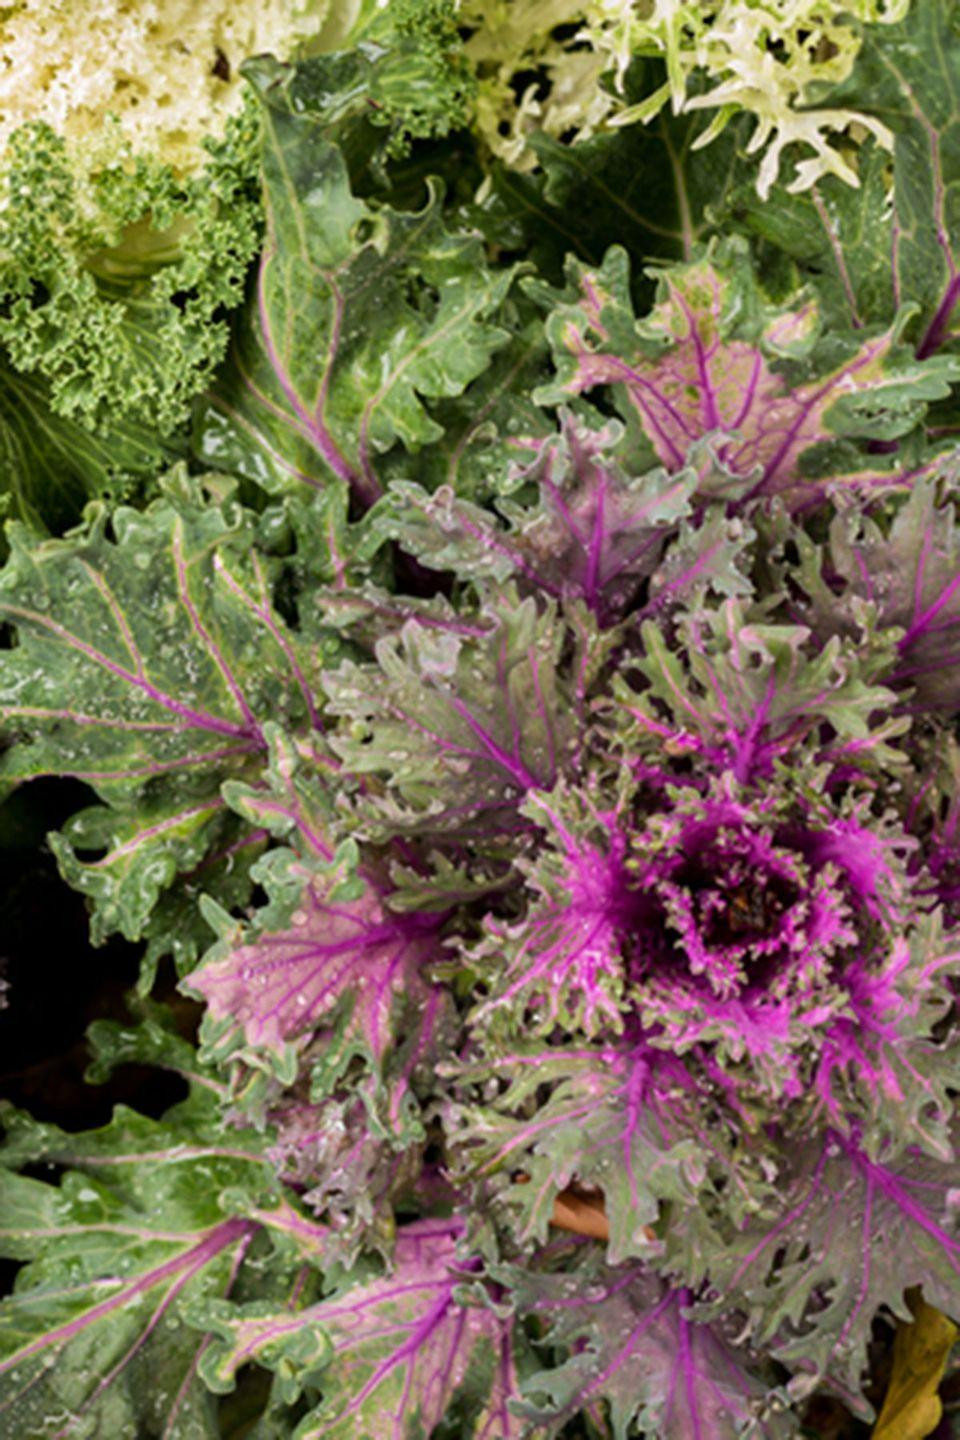 <p>Keep this kale well-watered if you want to see vibrant purple and green hues this fall. </p><p><strong>Zones: 6-11</strong></p>